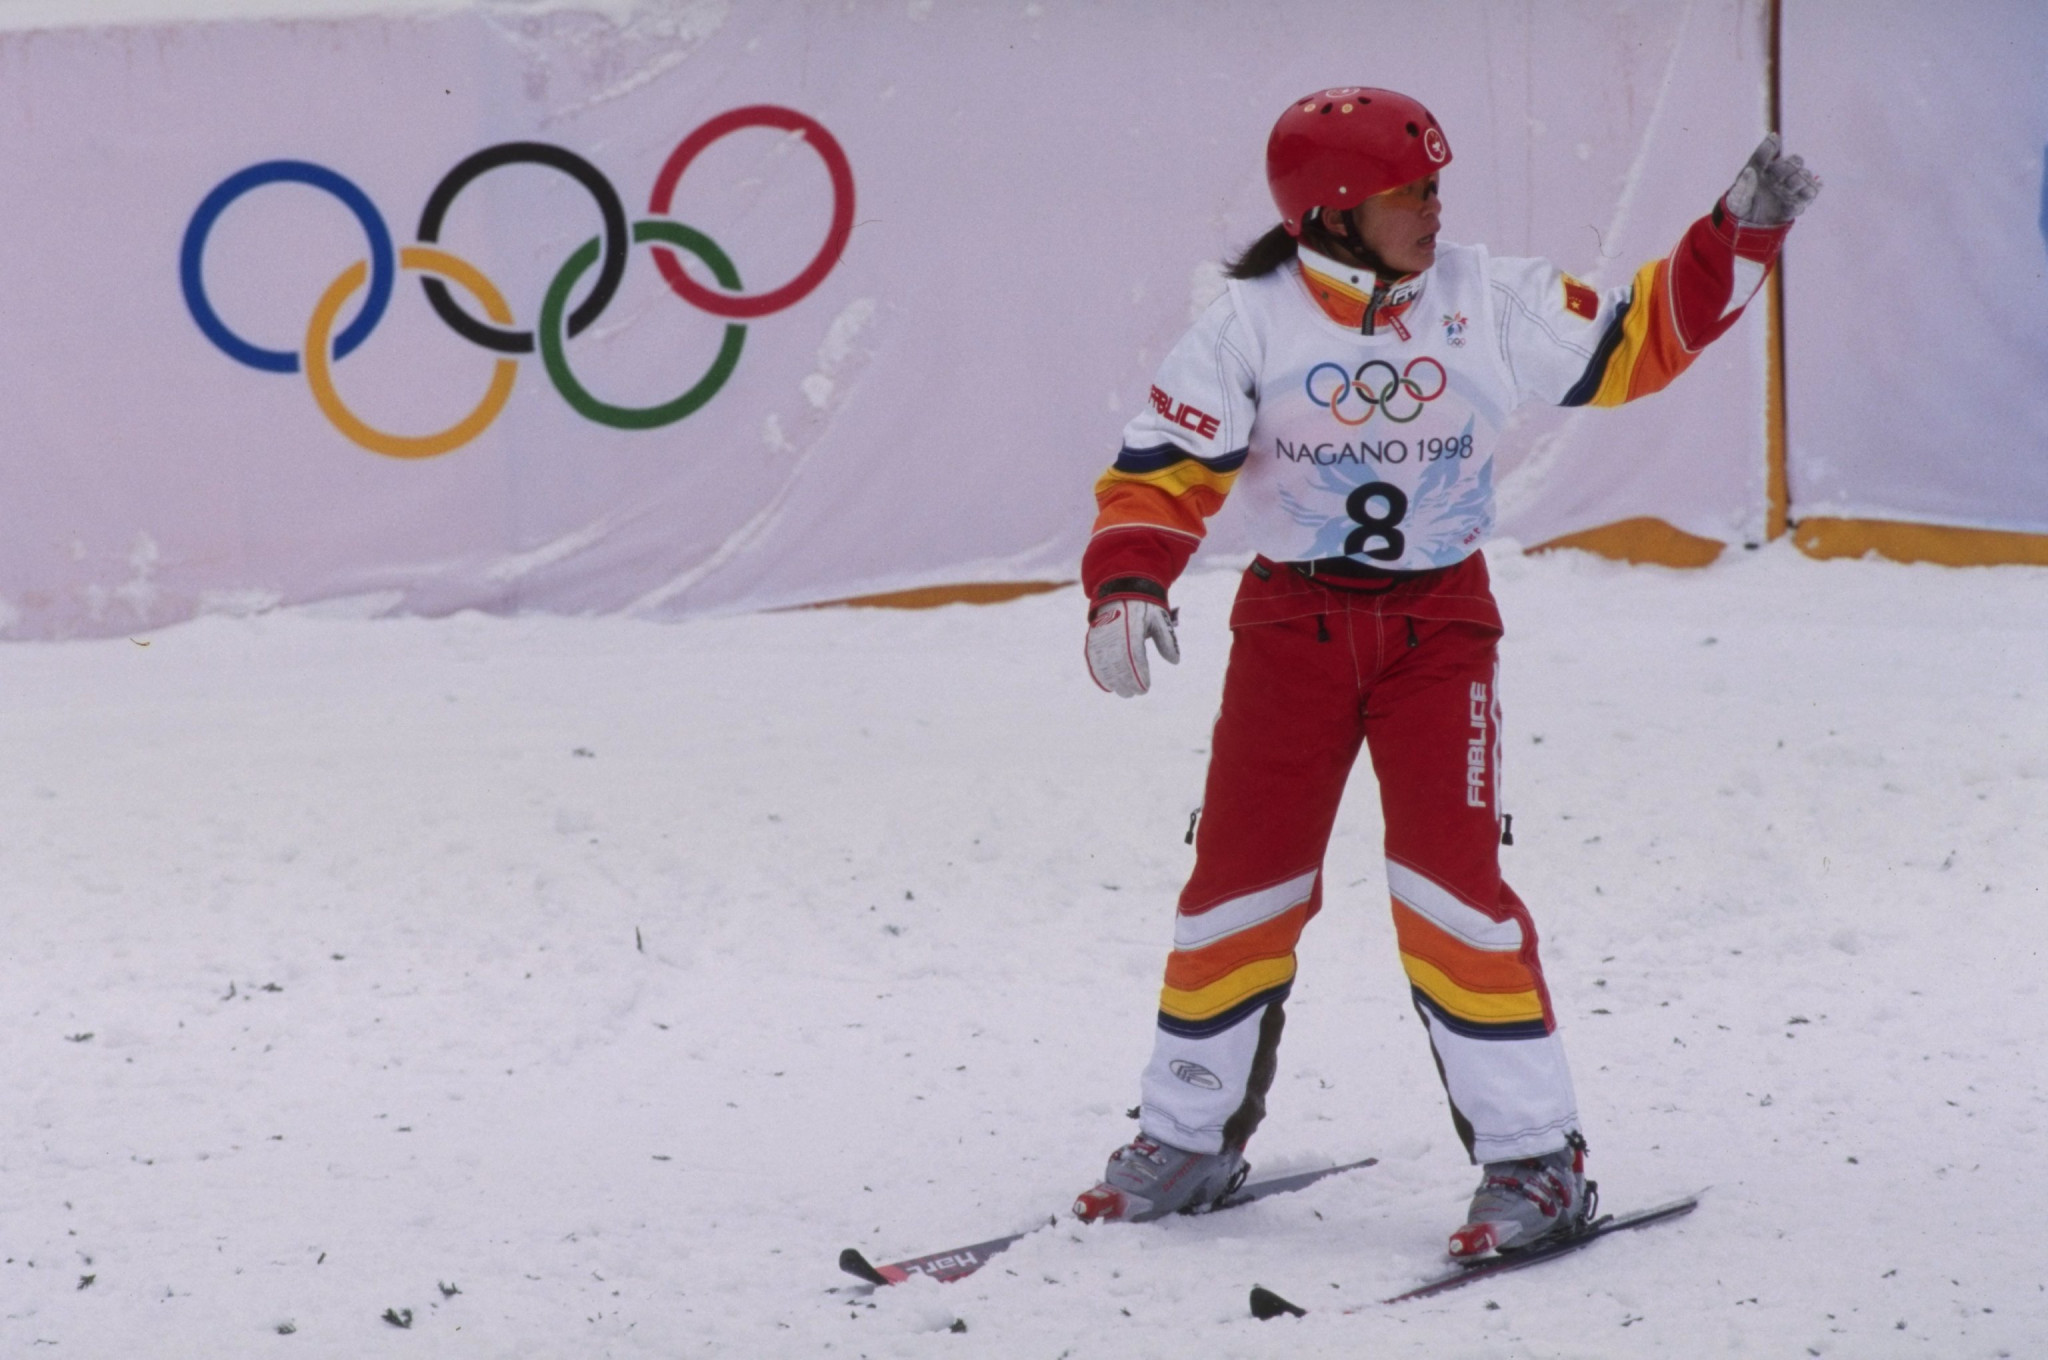 Former freestyle skier Guo trains Beijing 2022 volunteers online